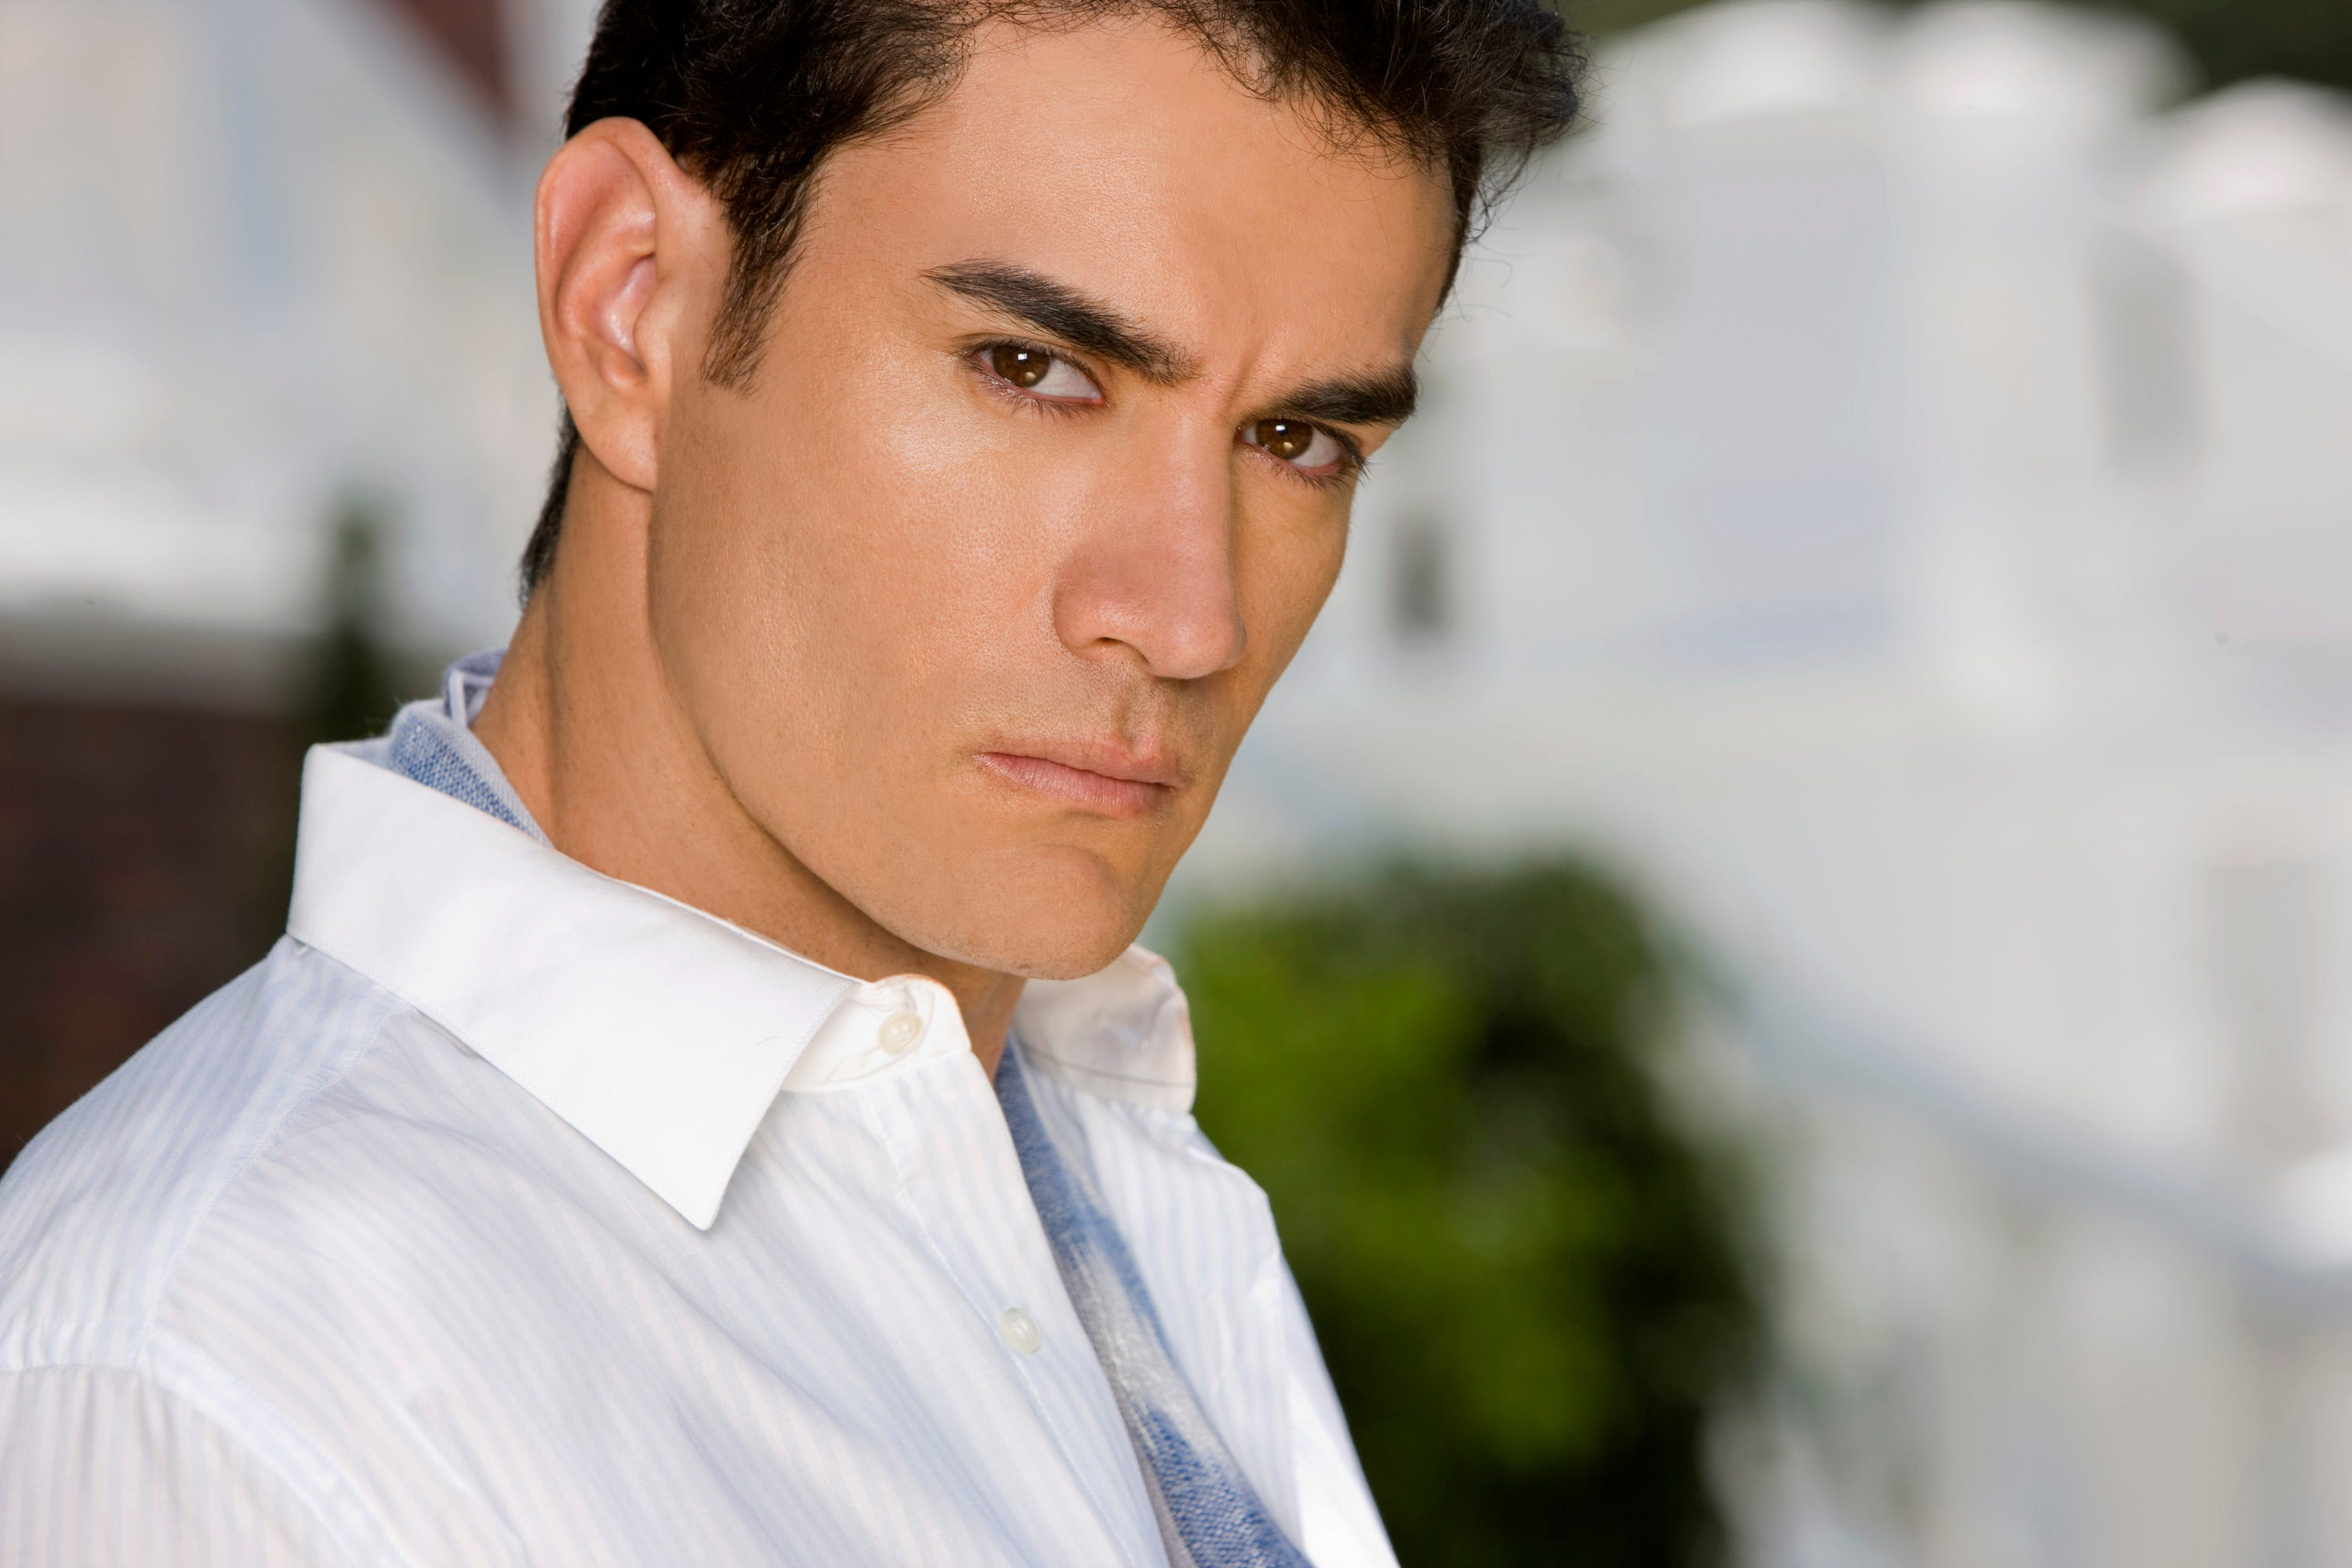 Altair Jarabo Wikipedia how much money makes david zepeda? net worth - how much